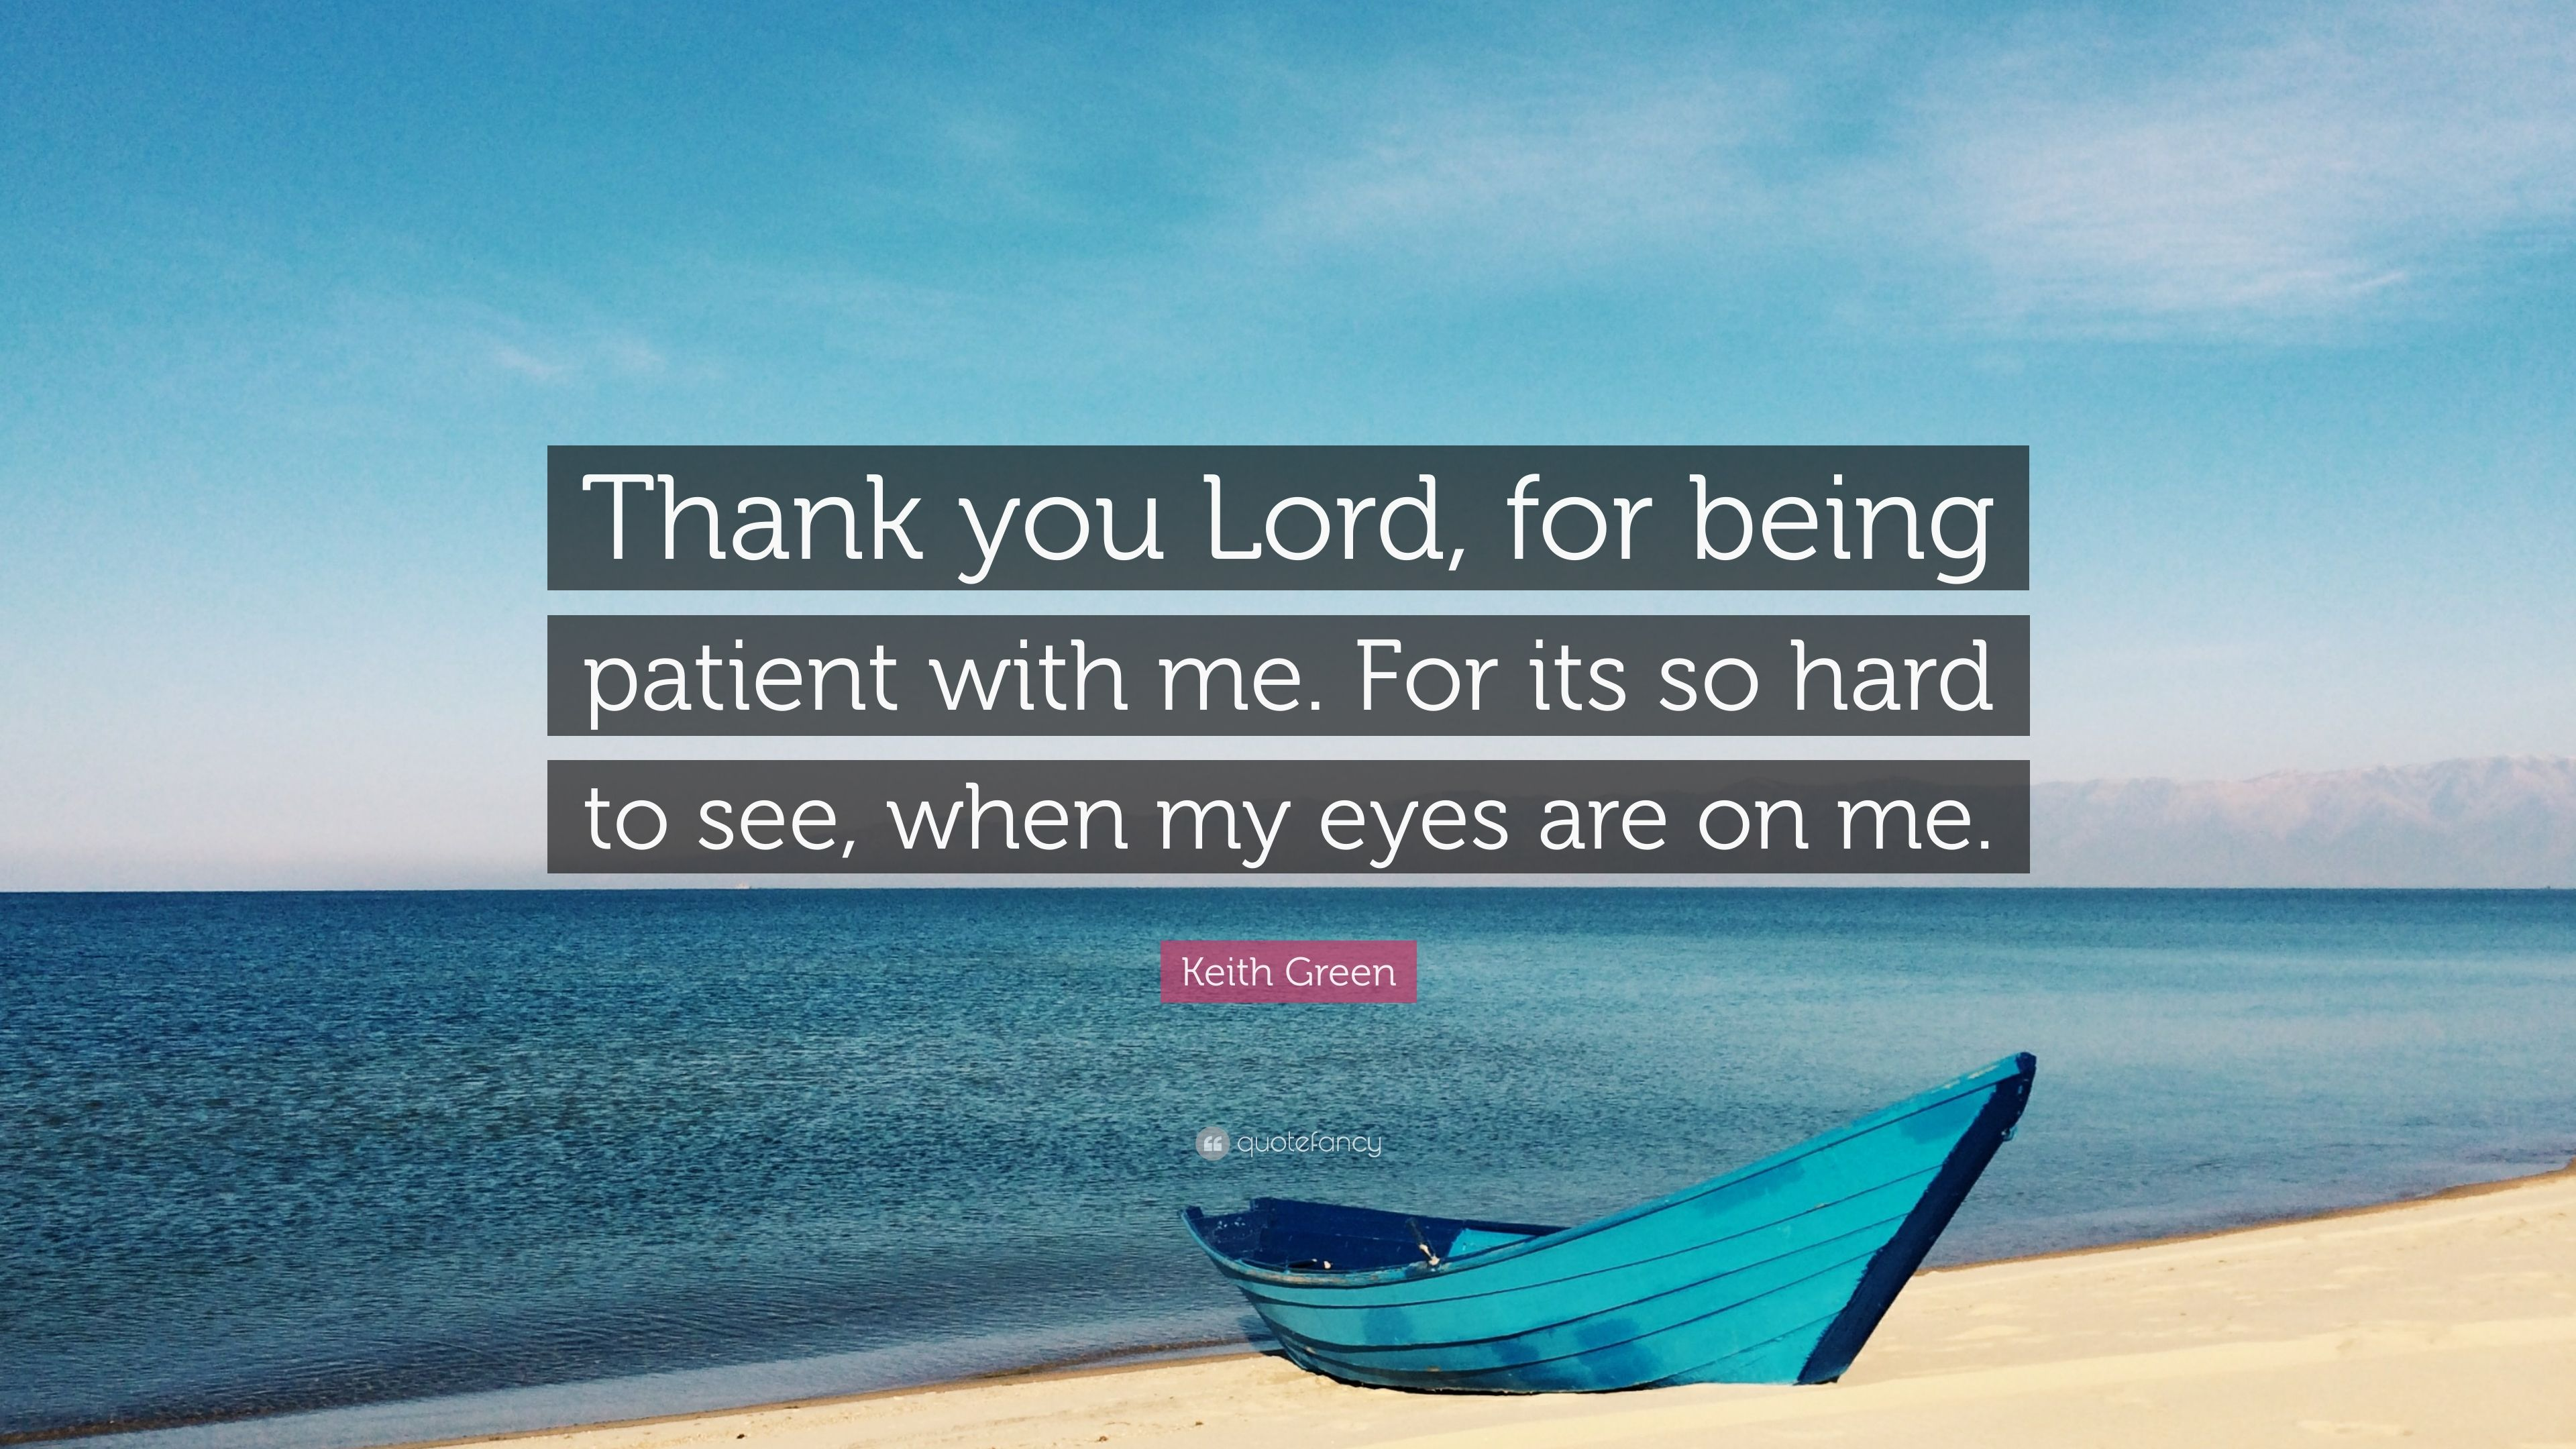 Keith Green Quote: Thank you Lord, for being patient with